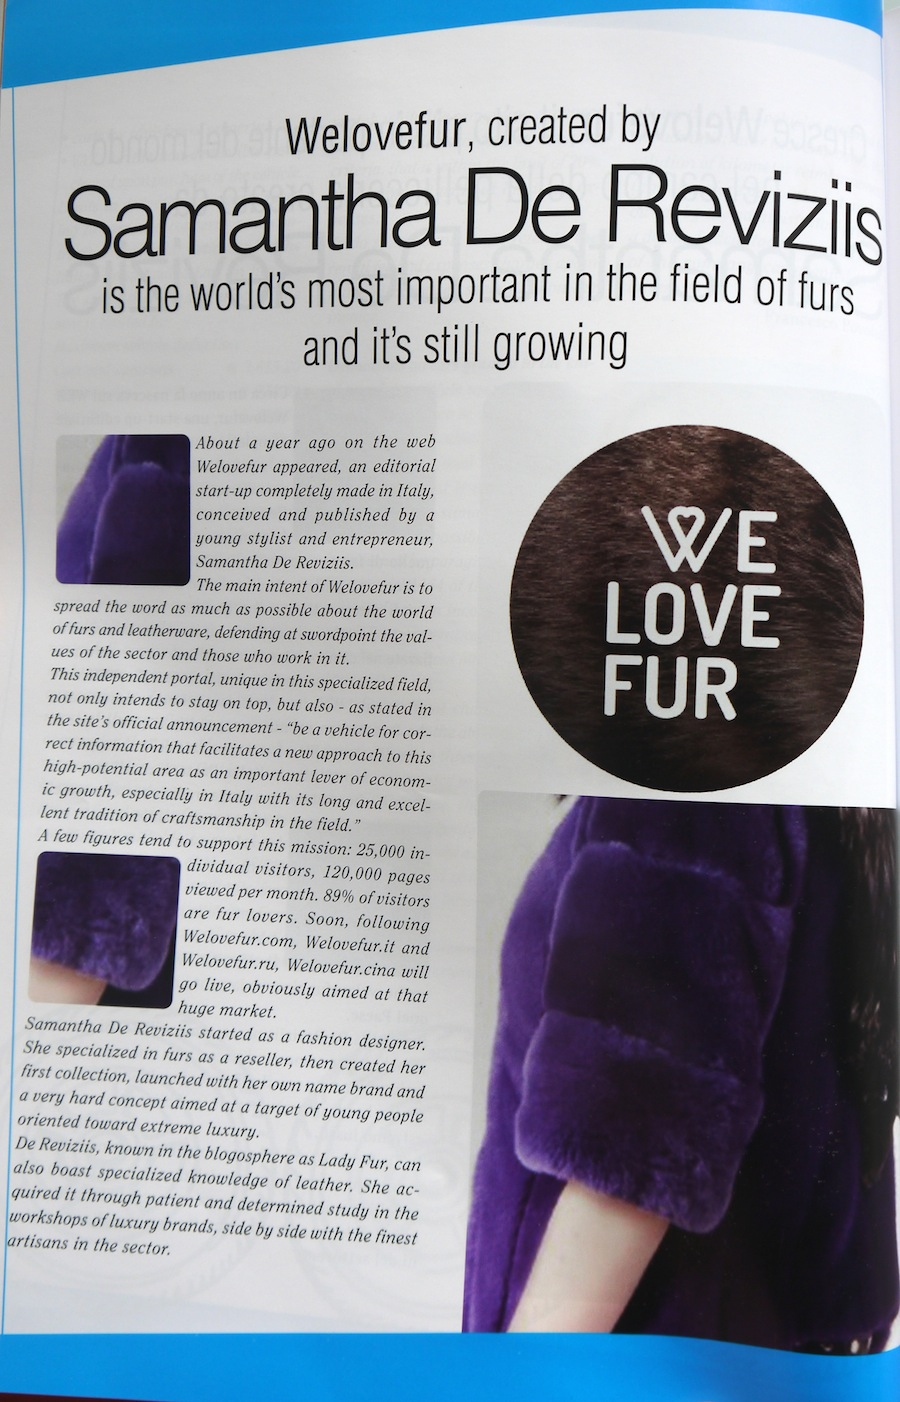 lady fur pagin edizioni trends welovefur